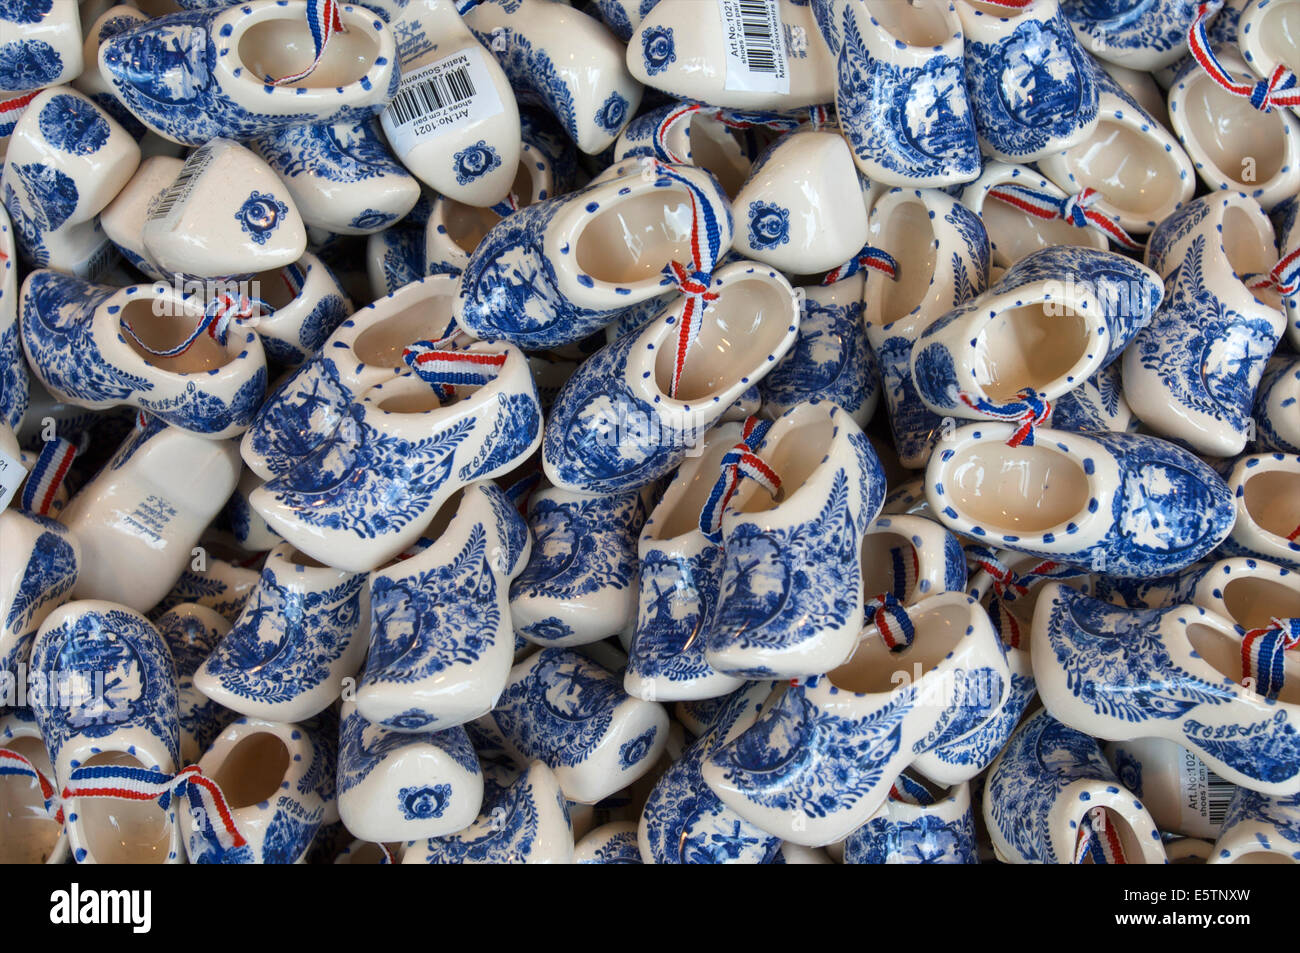 A basket with pottery Delft Blue wooden shoes as souvenirs in a shop in Volendam, The Netherlands - Stock Image